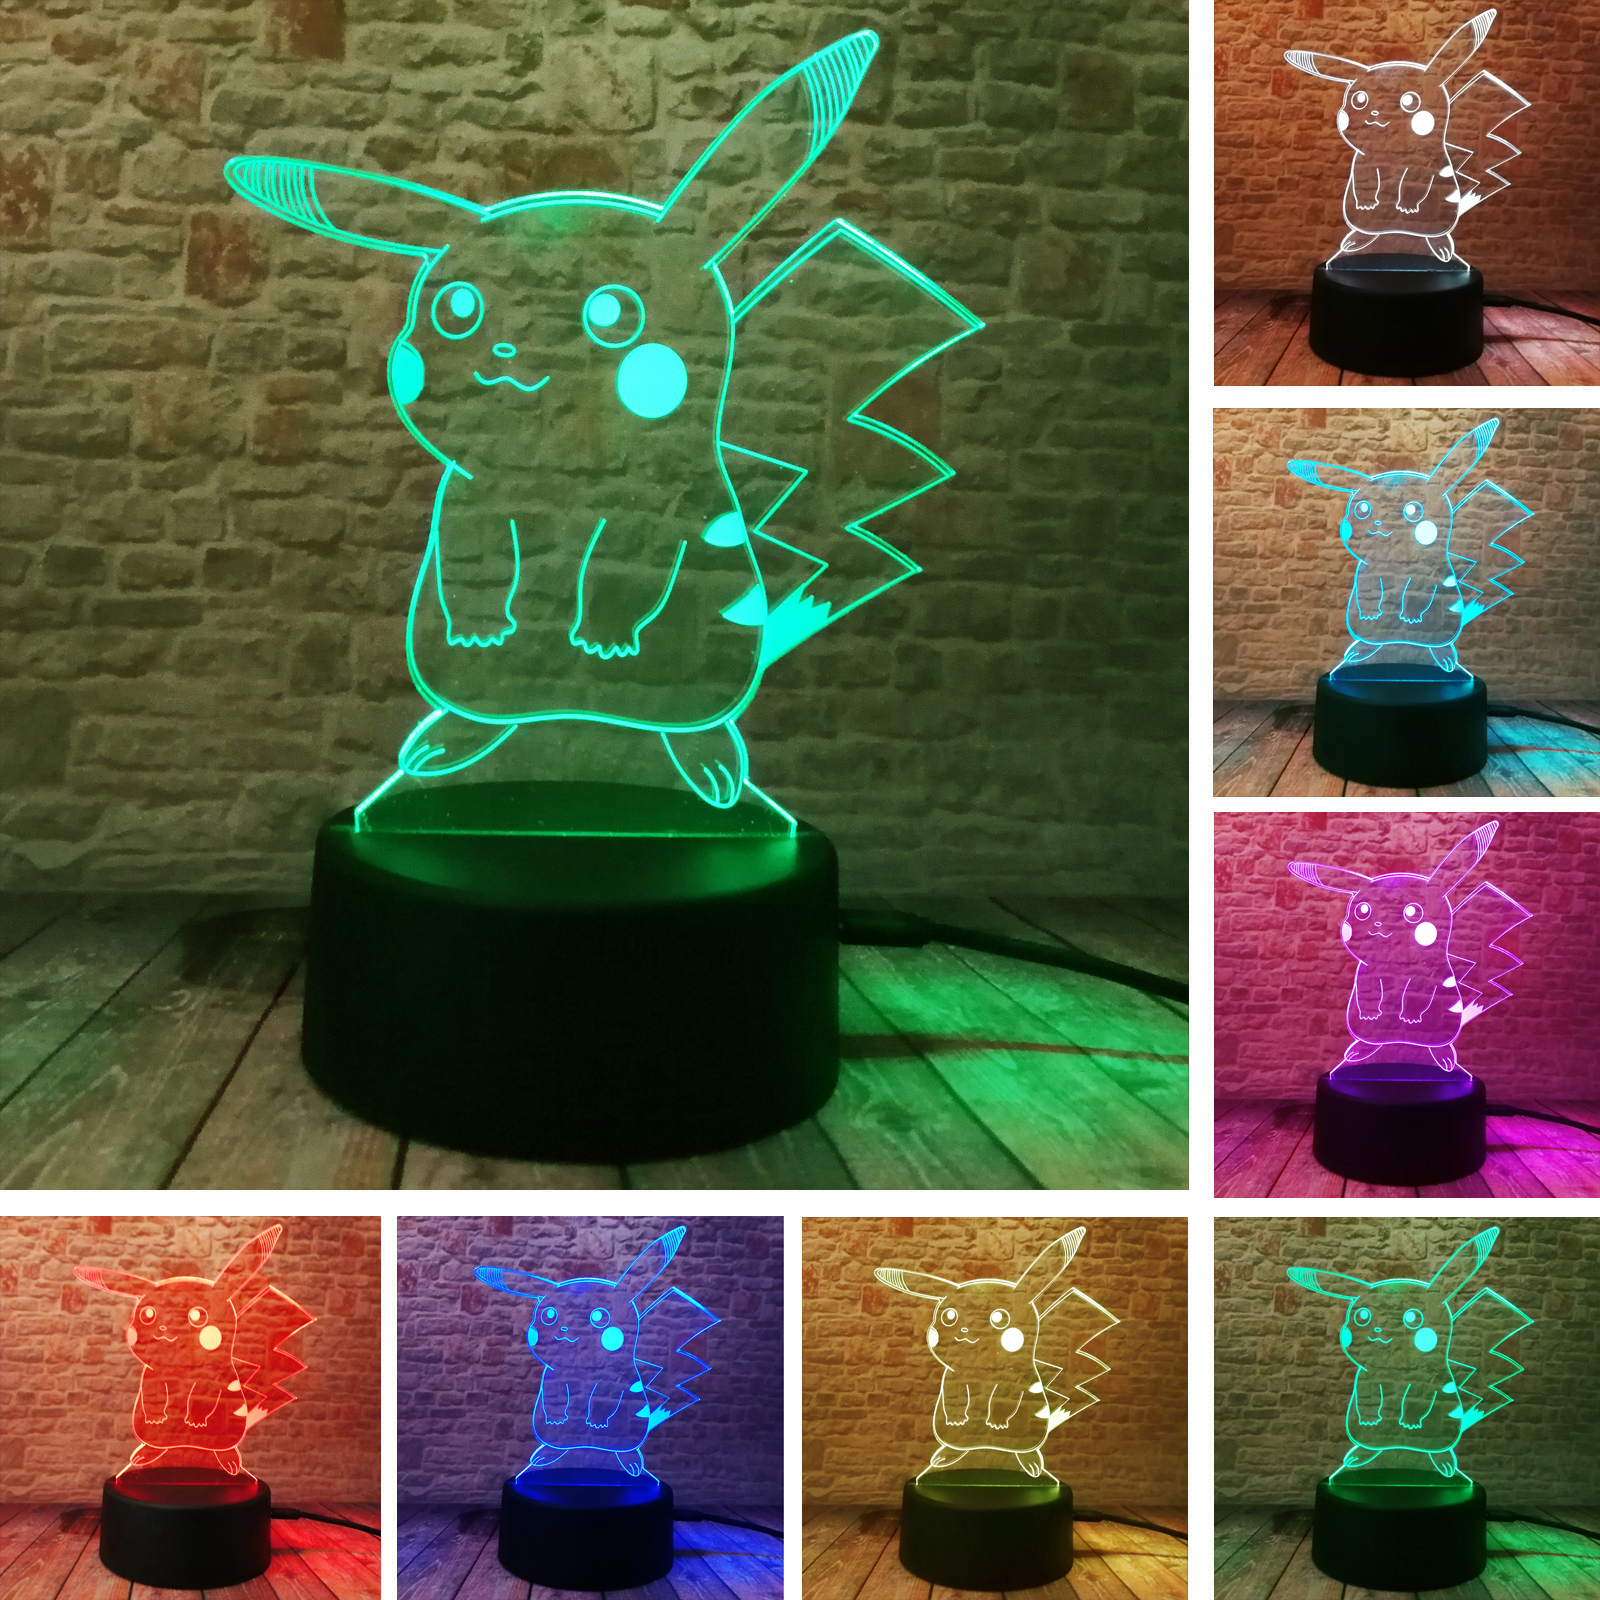 Hot Pokemon Go Action Figure 3D Atmosphere Illusion Night Light Pikachu Bedroom Kids Gift Creative 3D Illusion Lamp Drop Shippng